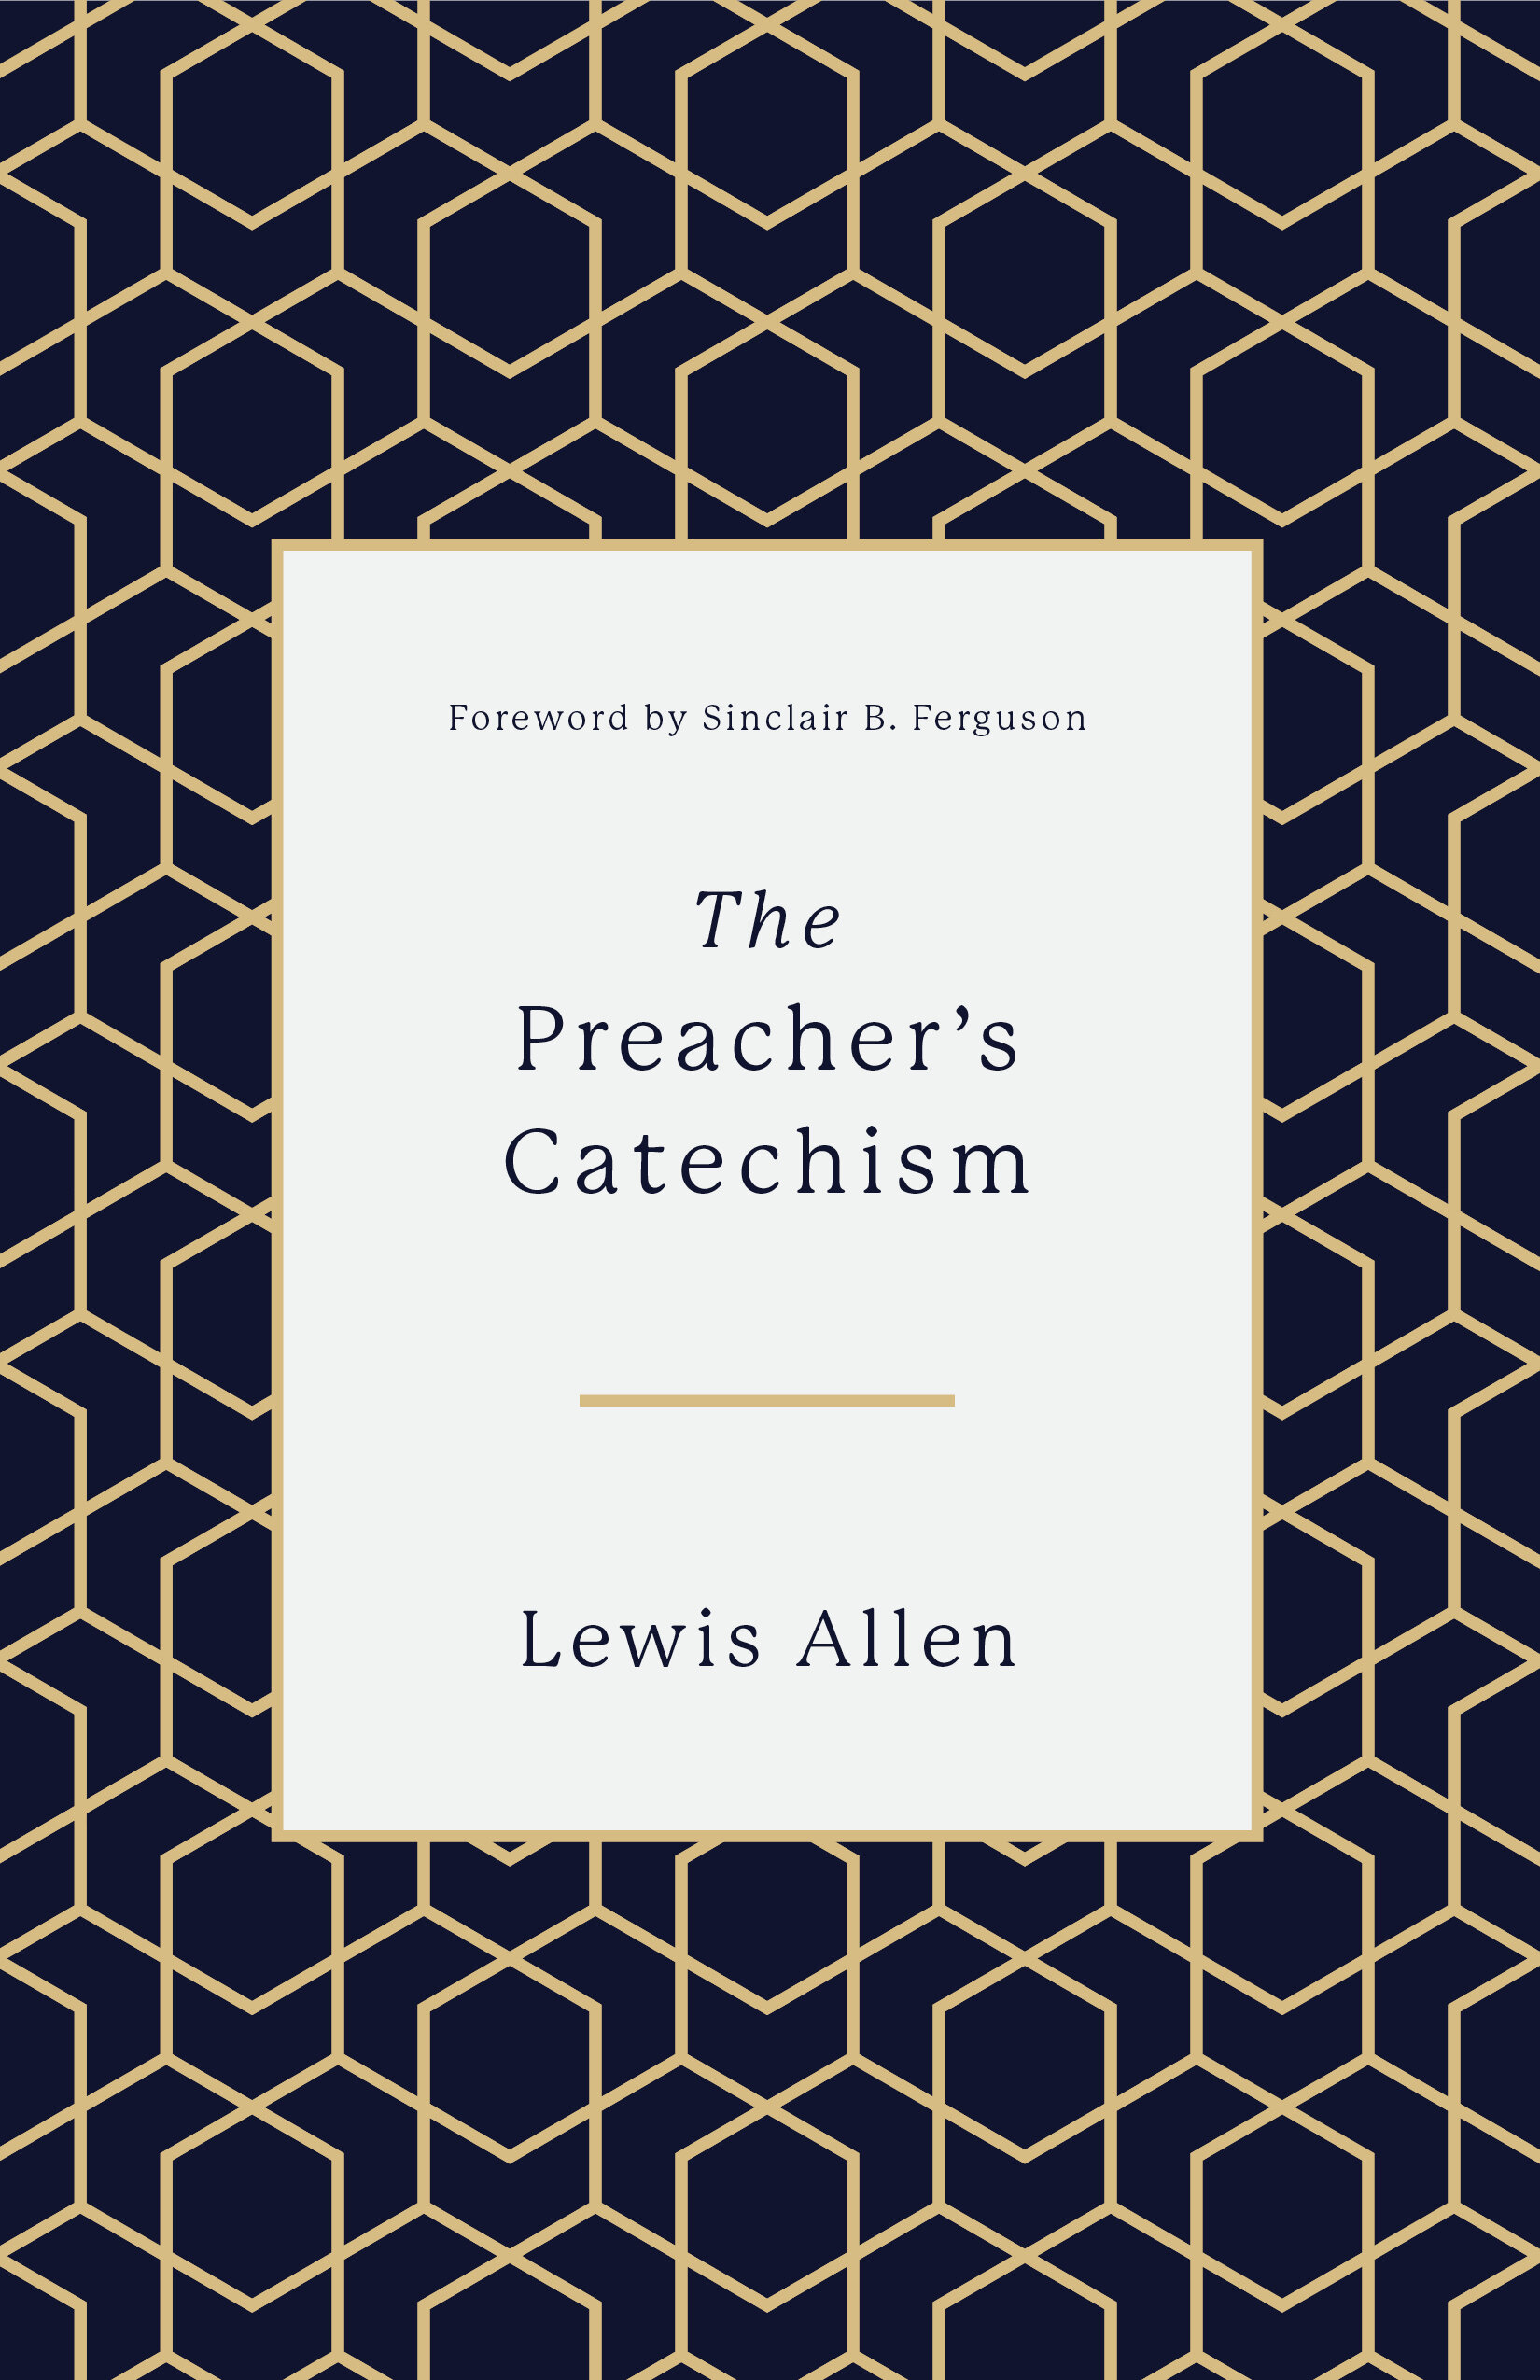 The Preacher's Catechism